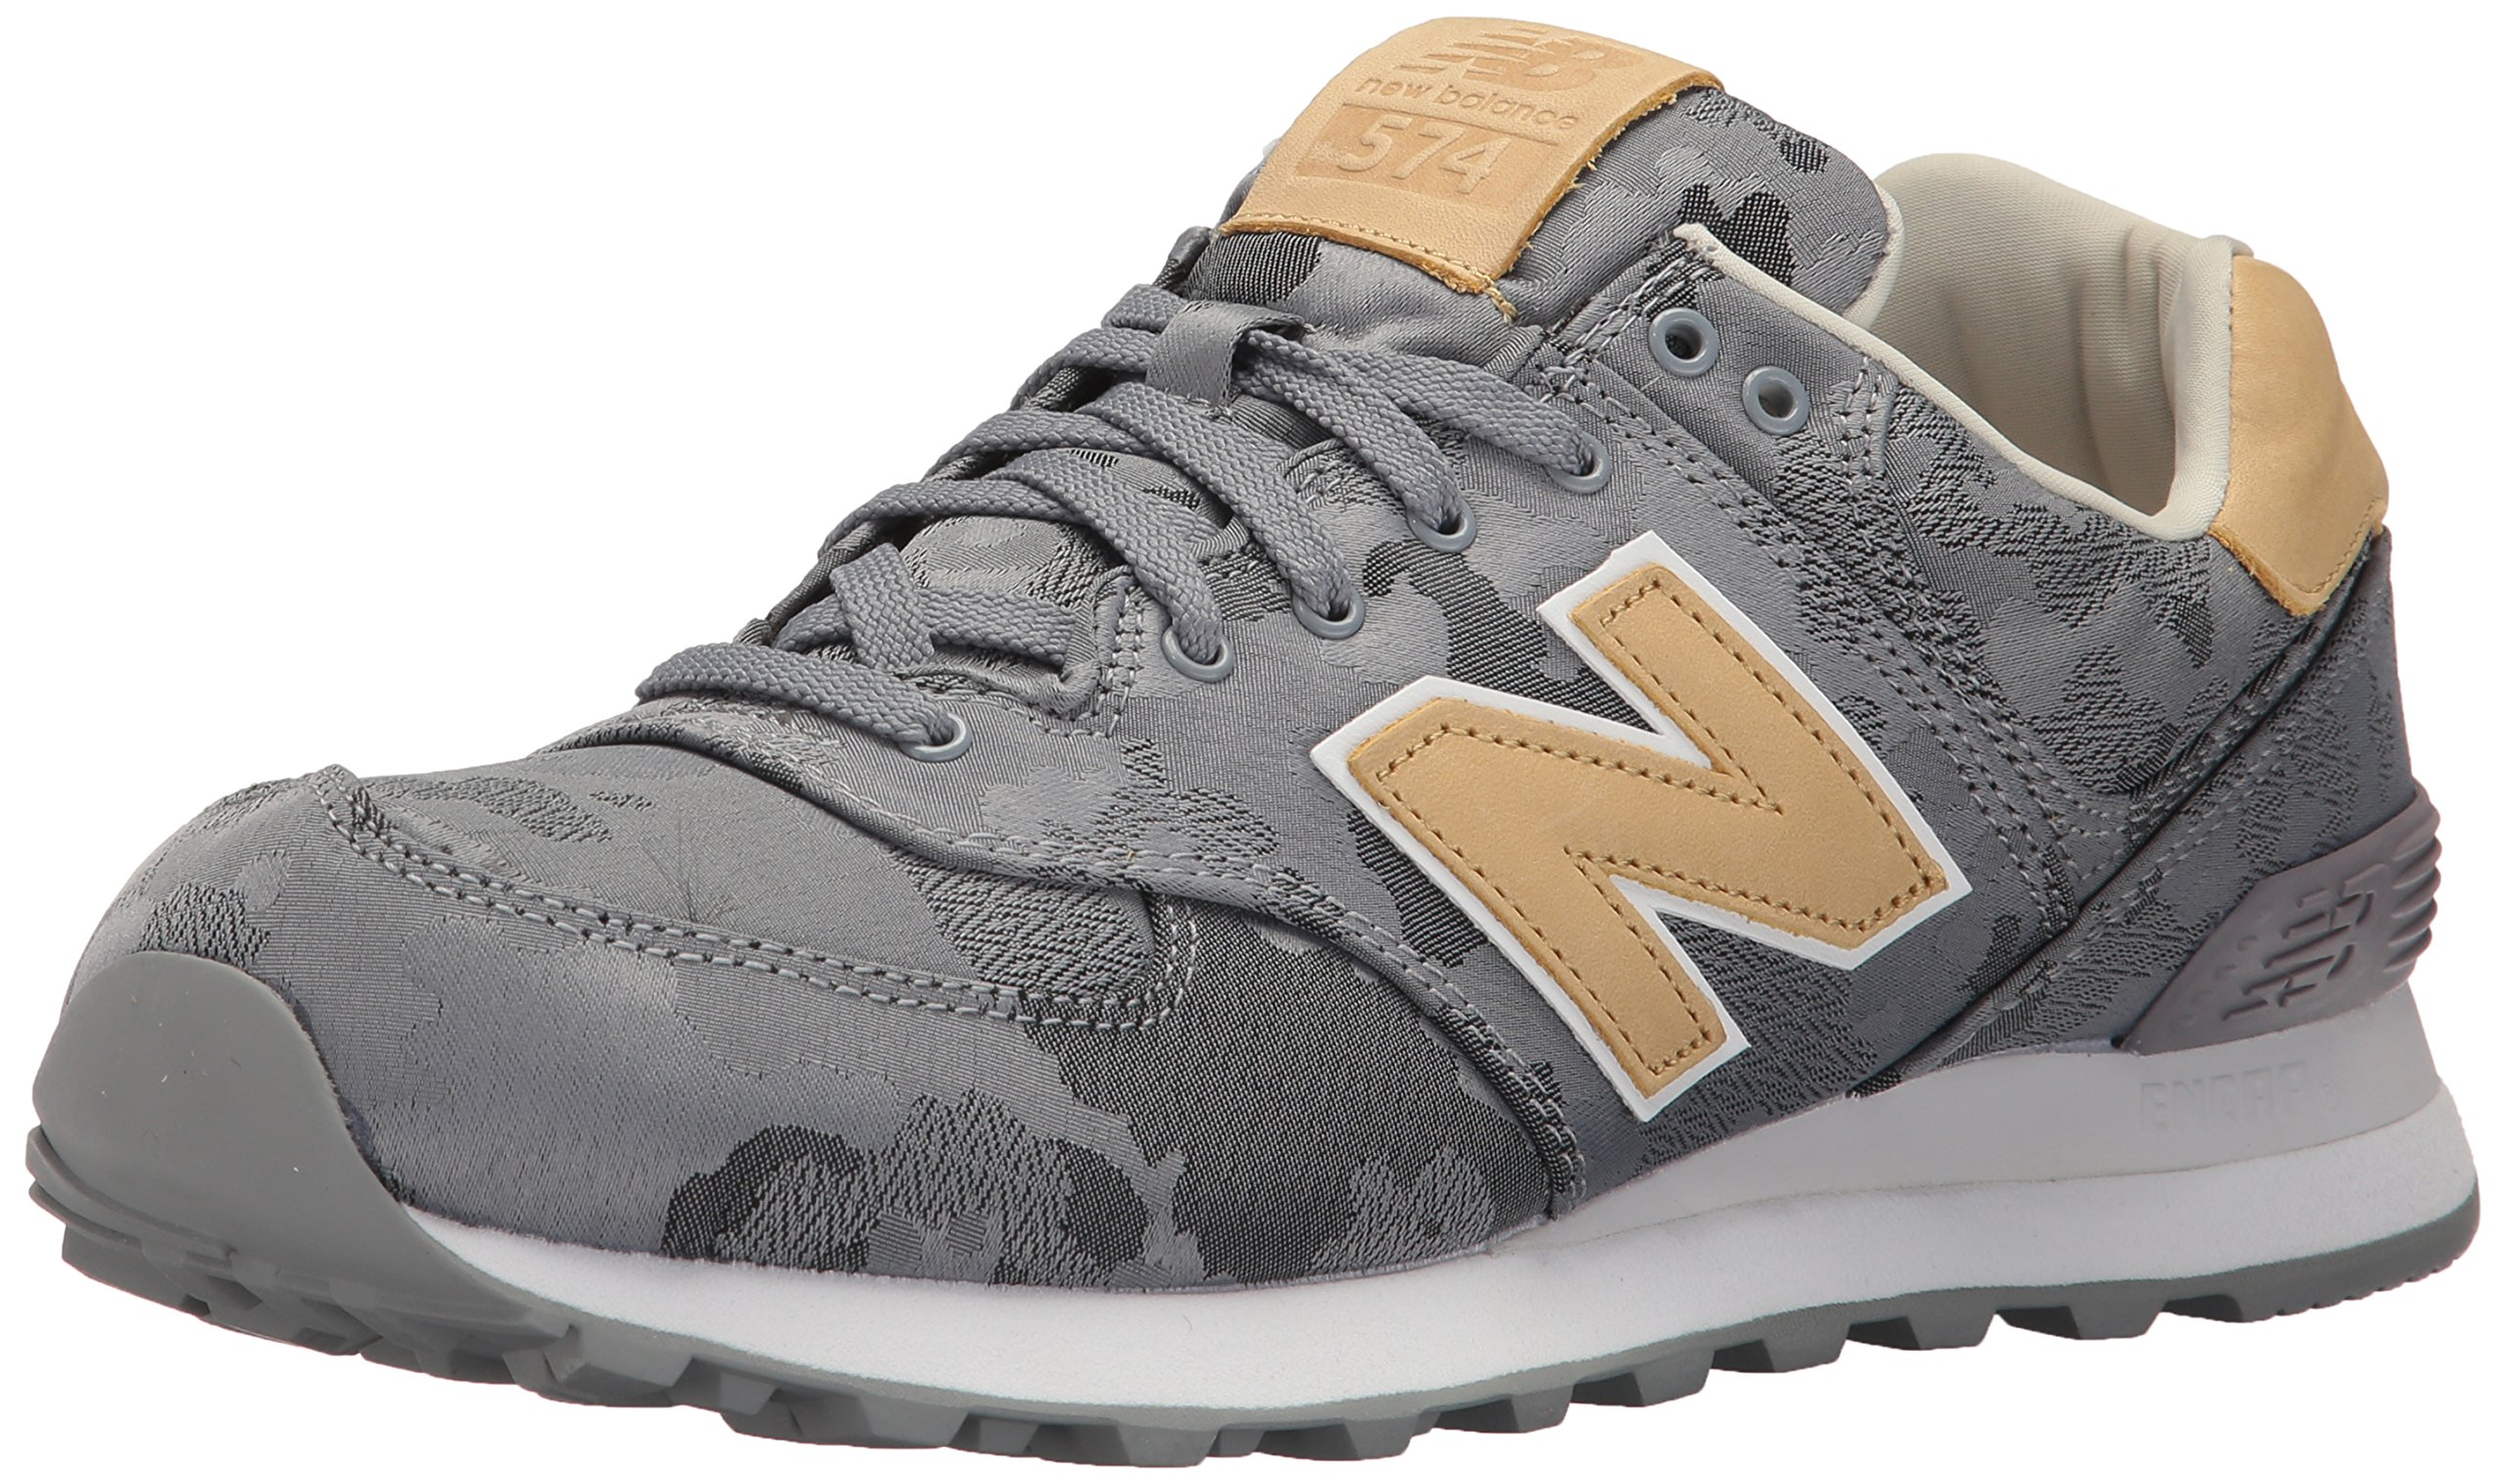 New Balance Men's 574 Cameo Pack Lifestyle Fashion Sneaker, Steel/Toasted Coconut, 10.5 D US